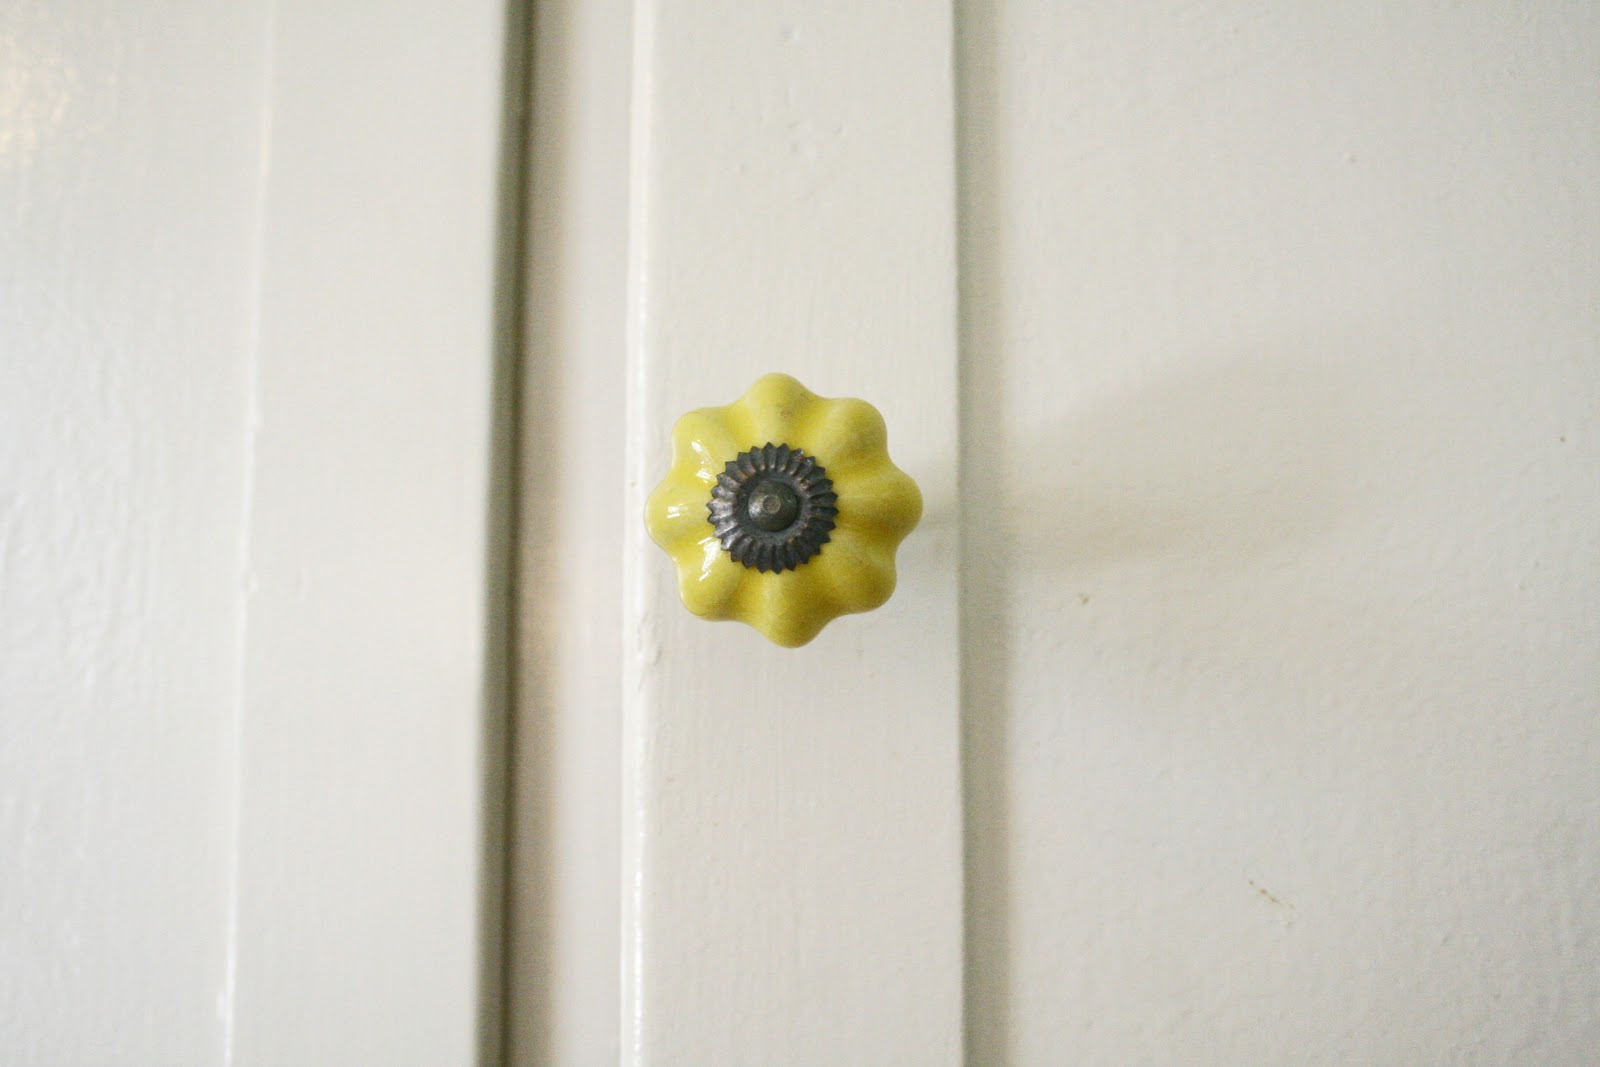 on the seventh day of Christmas – I contemplated cabinet knobs and paint colors